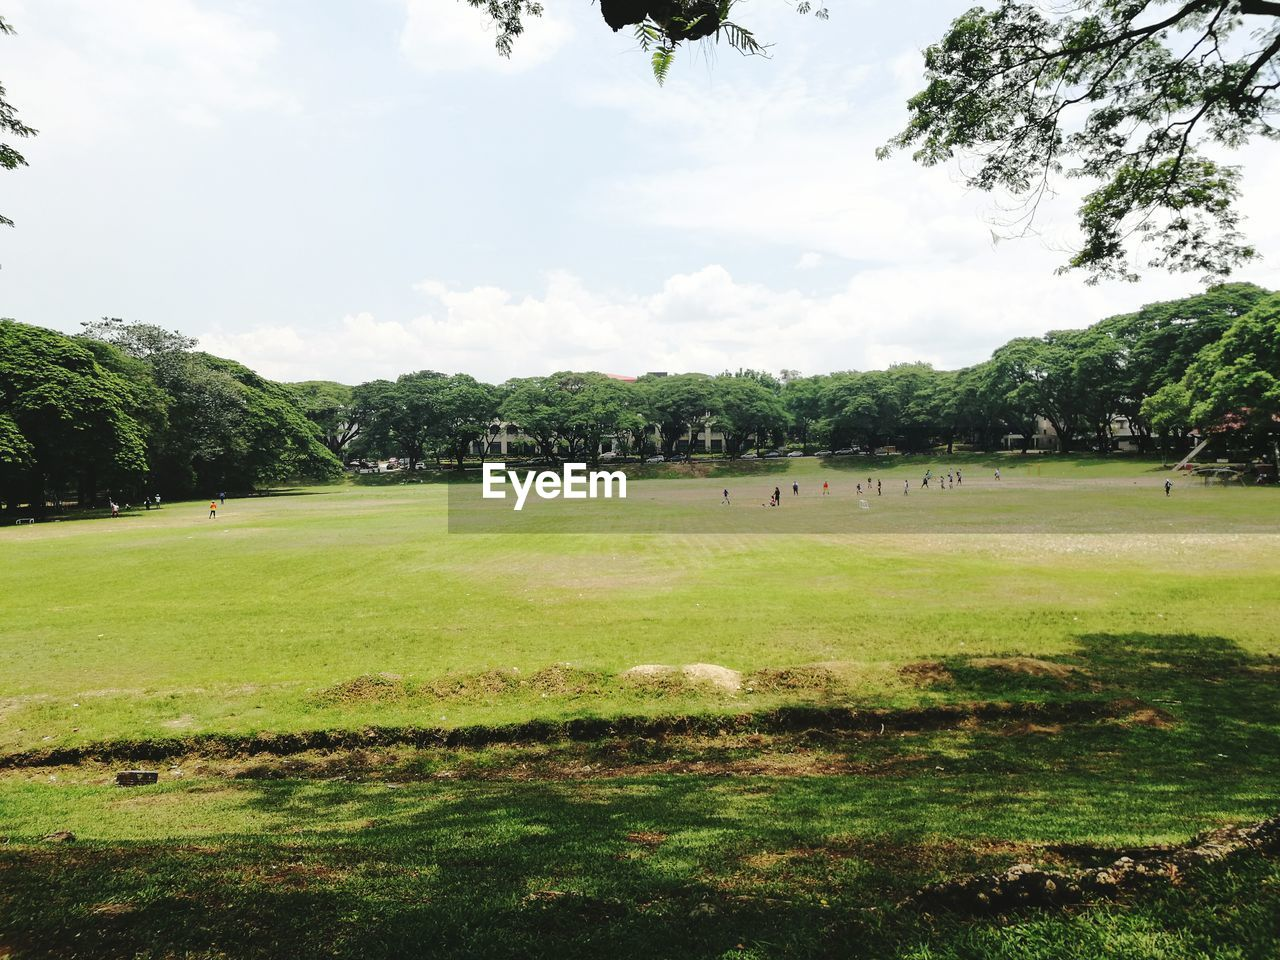 plant, tree, grass, sport, sky, cloud - sky, green color, day, nature, beauty in nature, land, tranquility, environment, outdoors, field, landscape, tranquil scene, leisure activity, park, playing